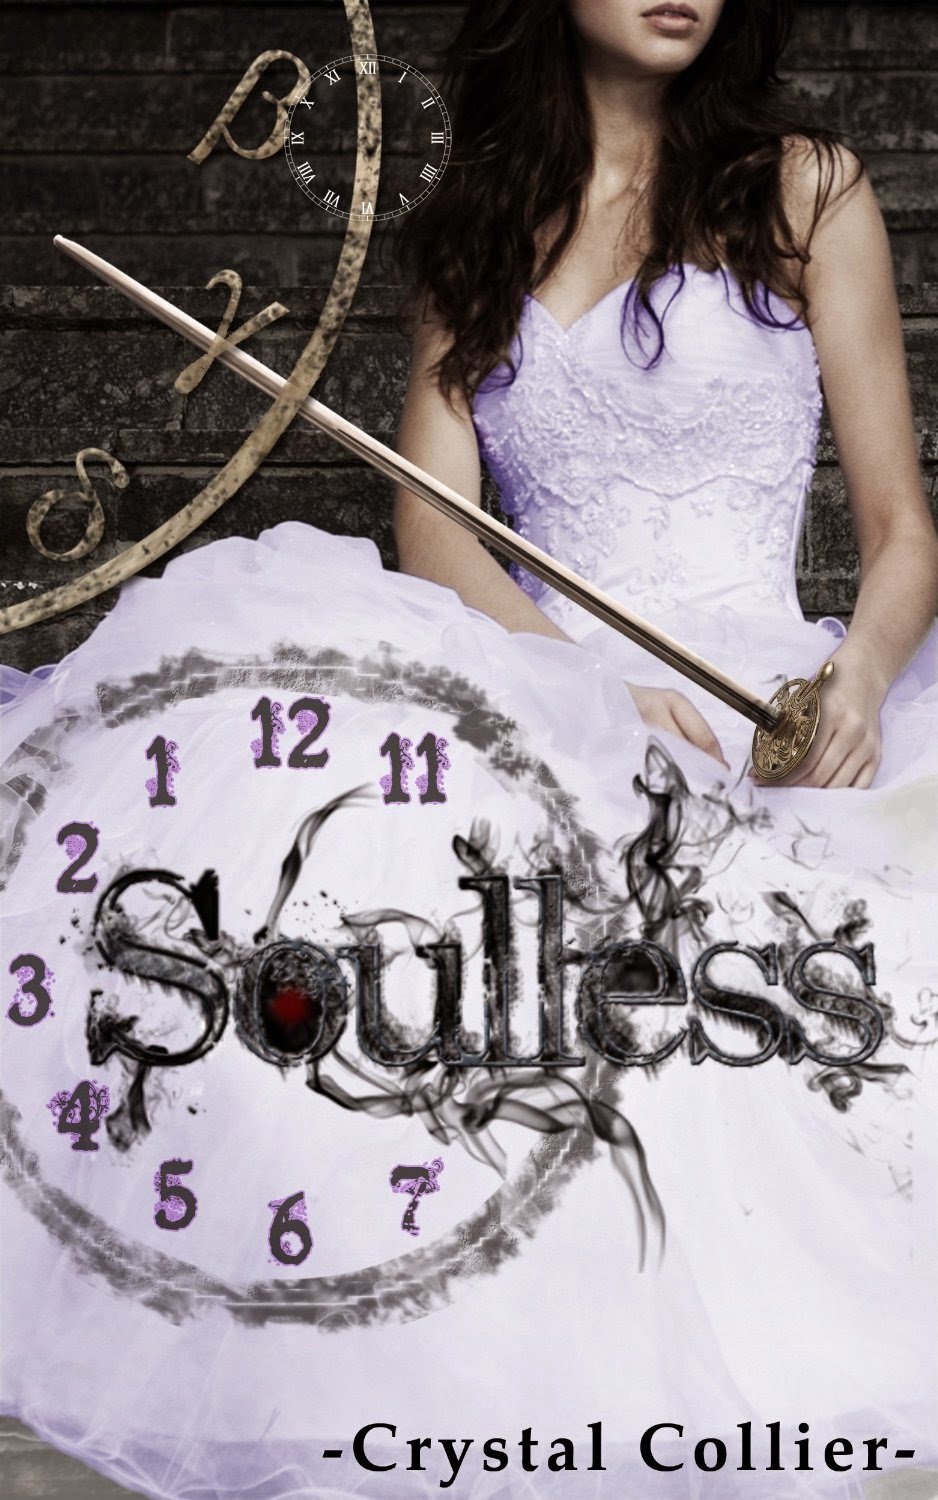 http://www.amazon.com/Soulless-Maiden-Time-Book-2-ebook/dp/B00N636ITK/ref=sr_1_10?s=books&ie=UTF8&qid=1413756408&sr=1-10&keywords=soulless